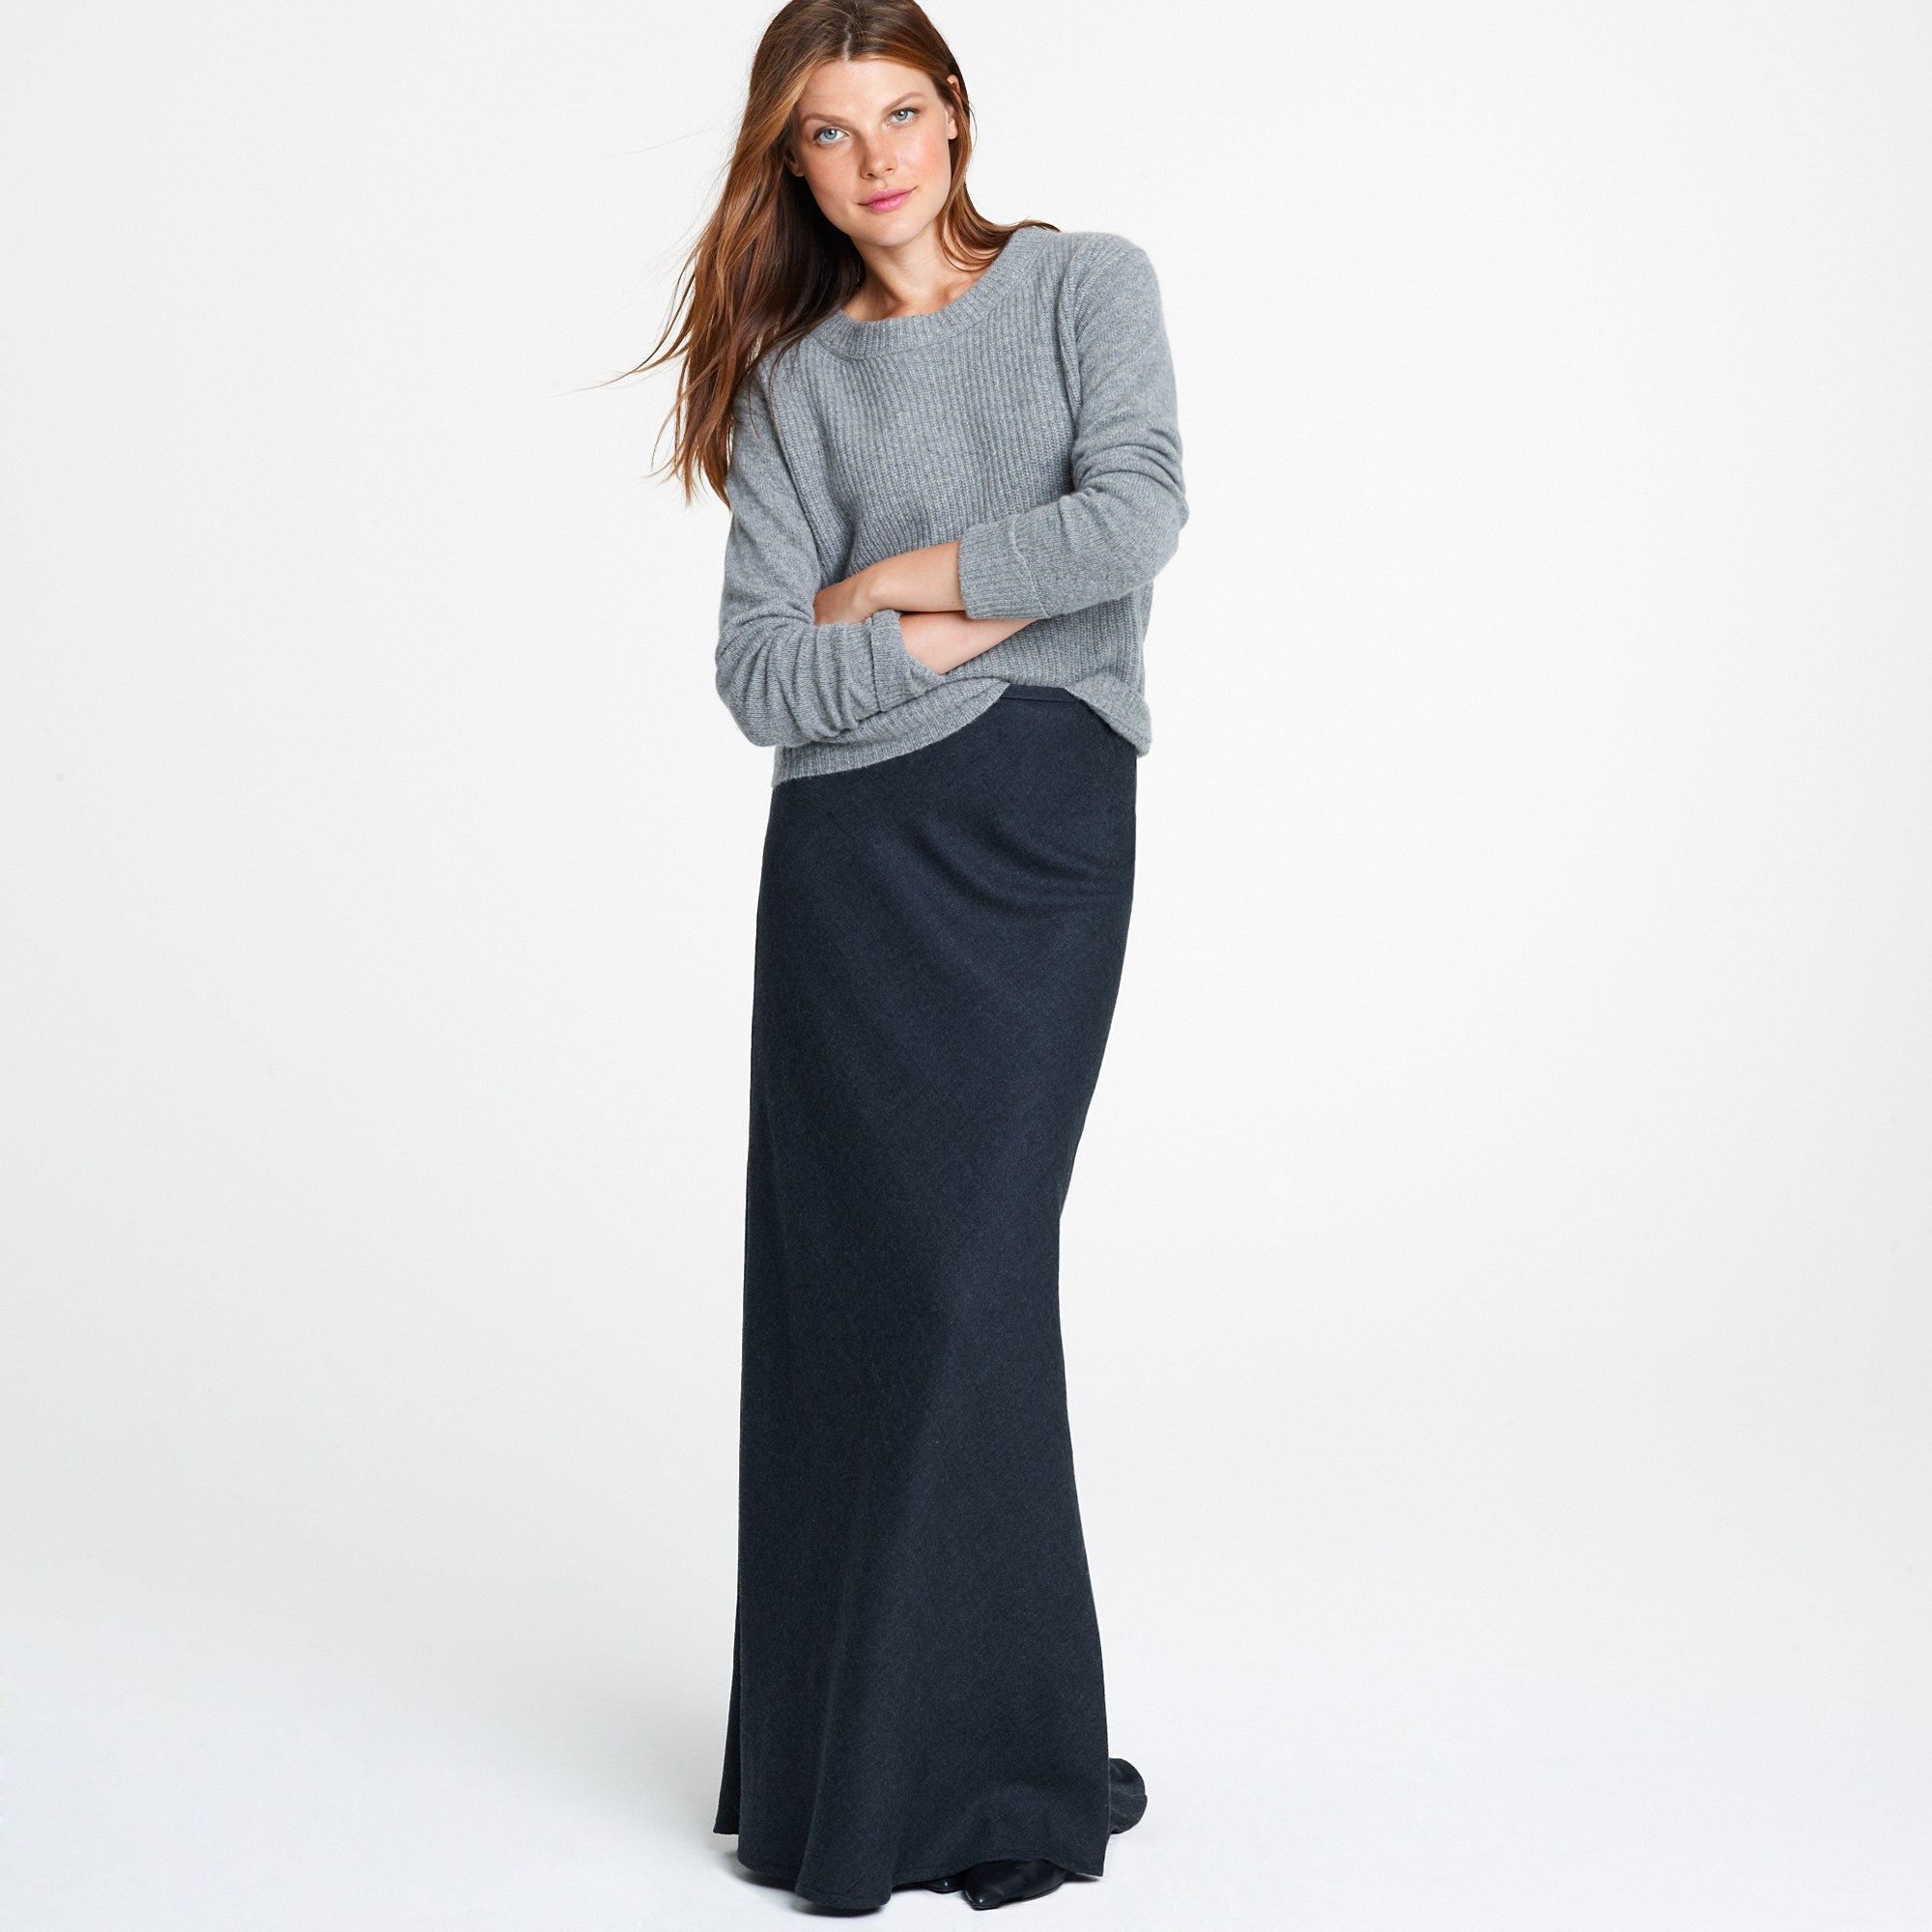 J.crew Wool Maxiskirt in Gray (hthr charcoal)